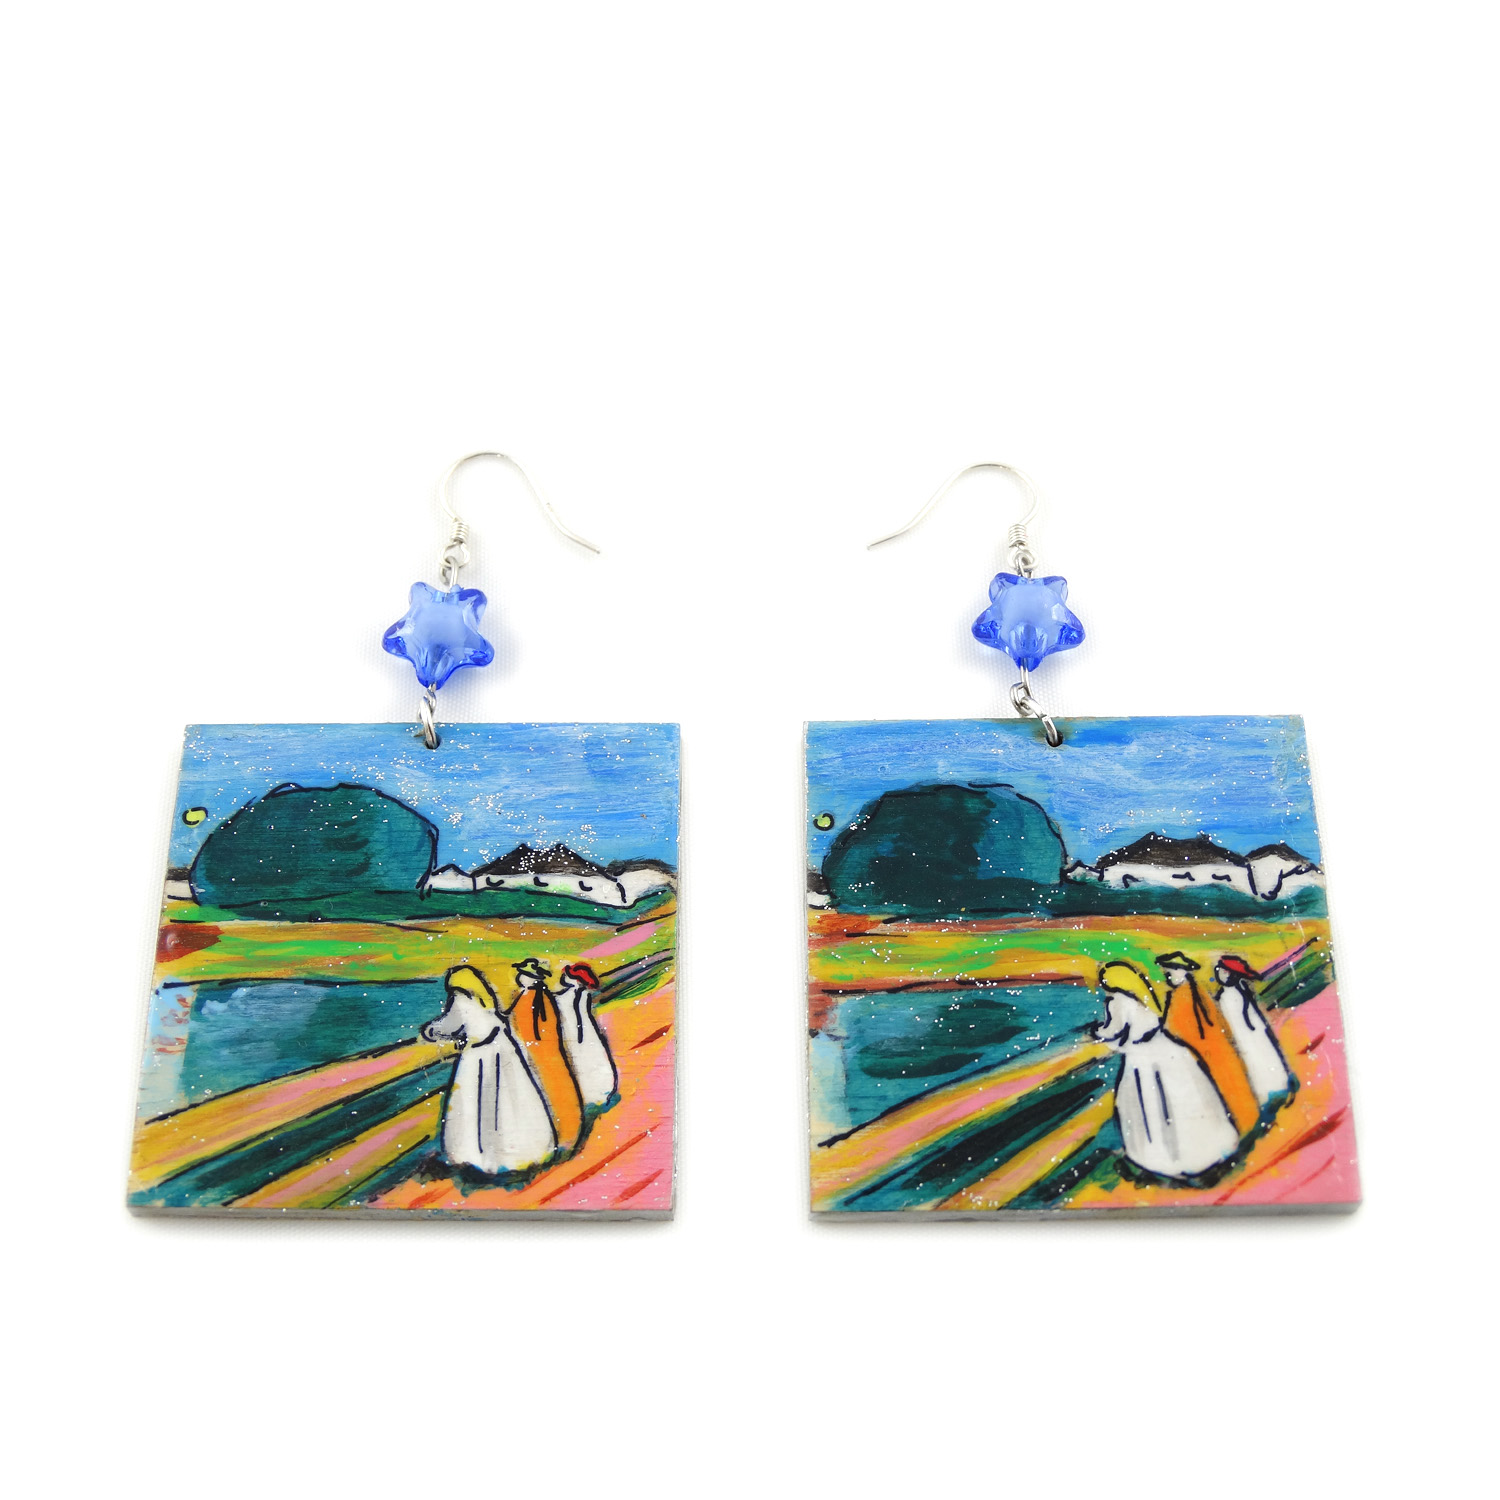 Hand-painted earrings - Girls on the bridge by Munch